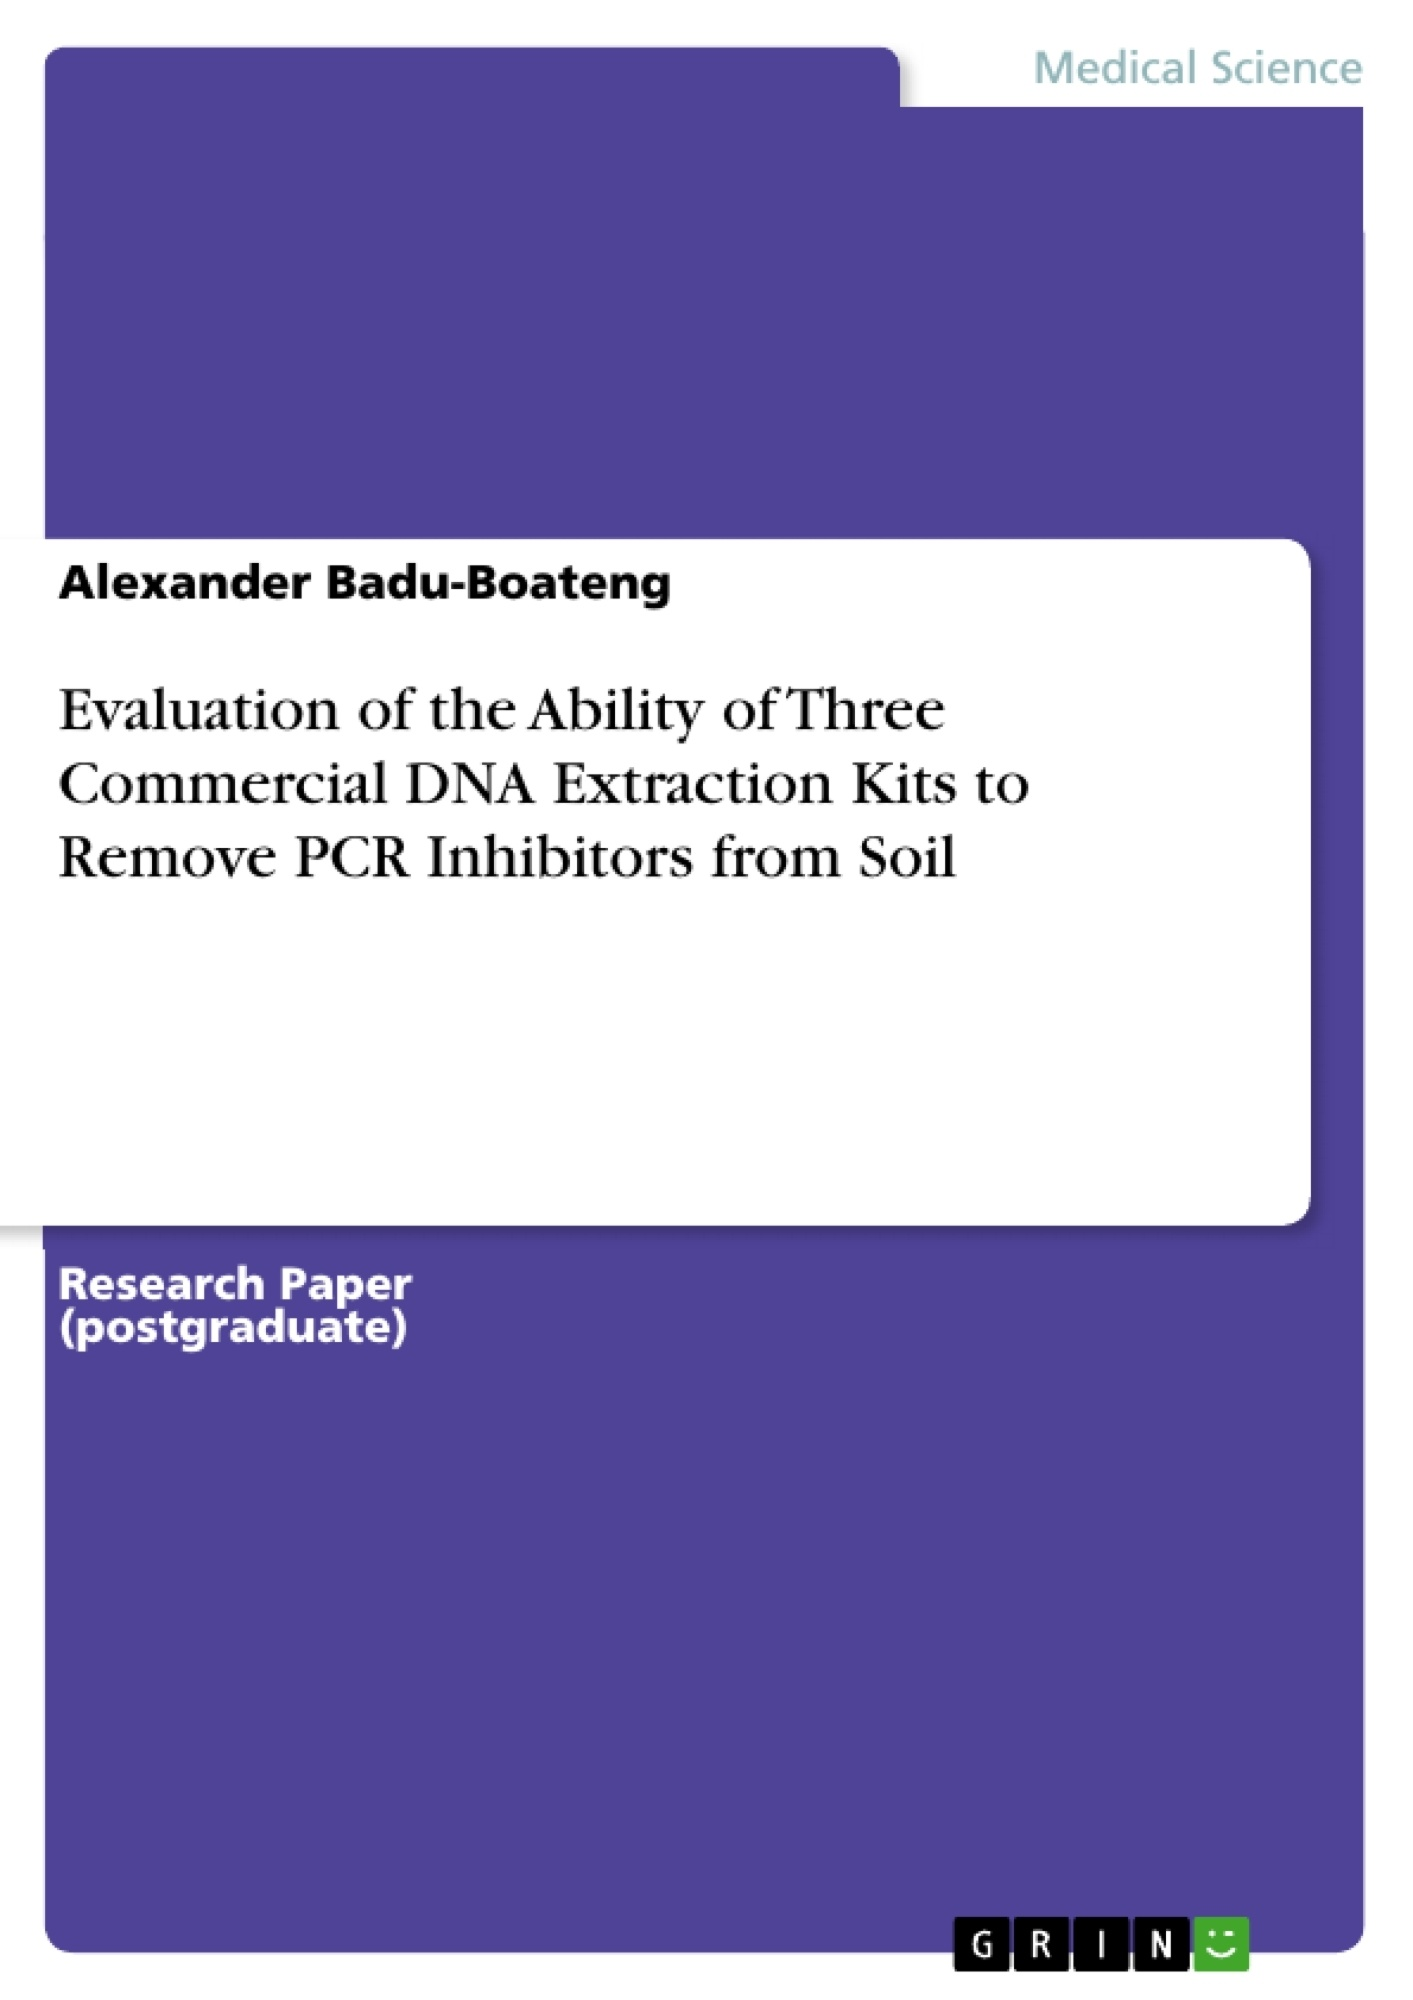 Title: Evaluation of the Ability of Three Commercial DNA Extraction Kits to Remove PCR Inhibitors from Soil